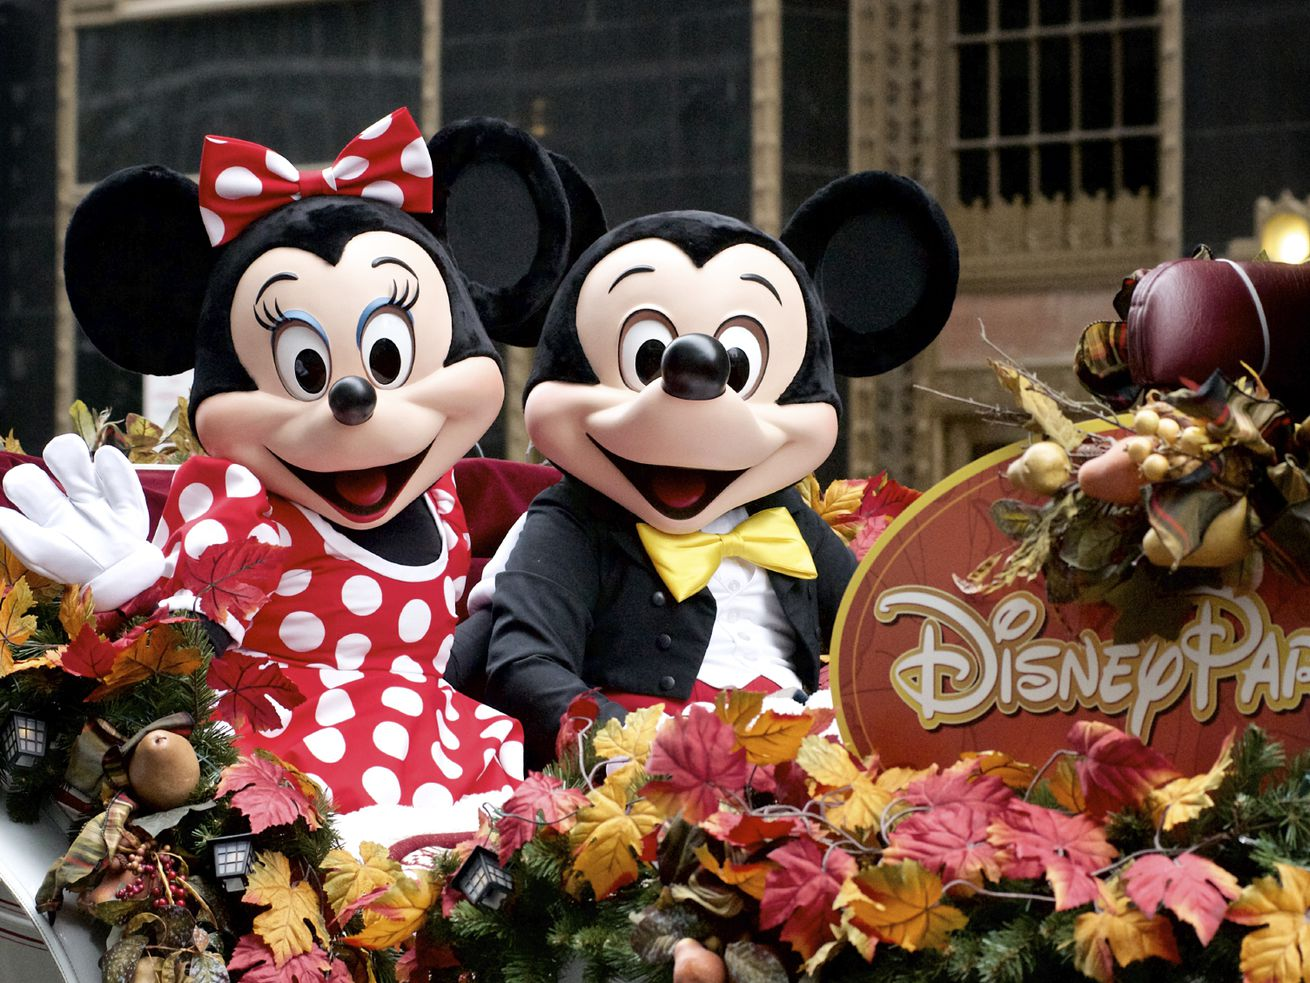 Paid to play: Here's how you can get paid to go to Disneyworld